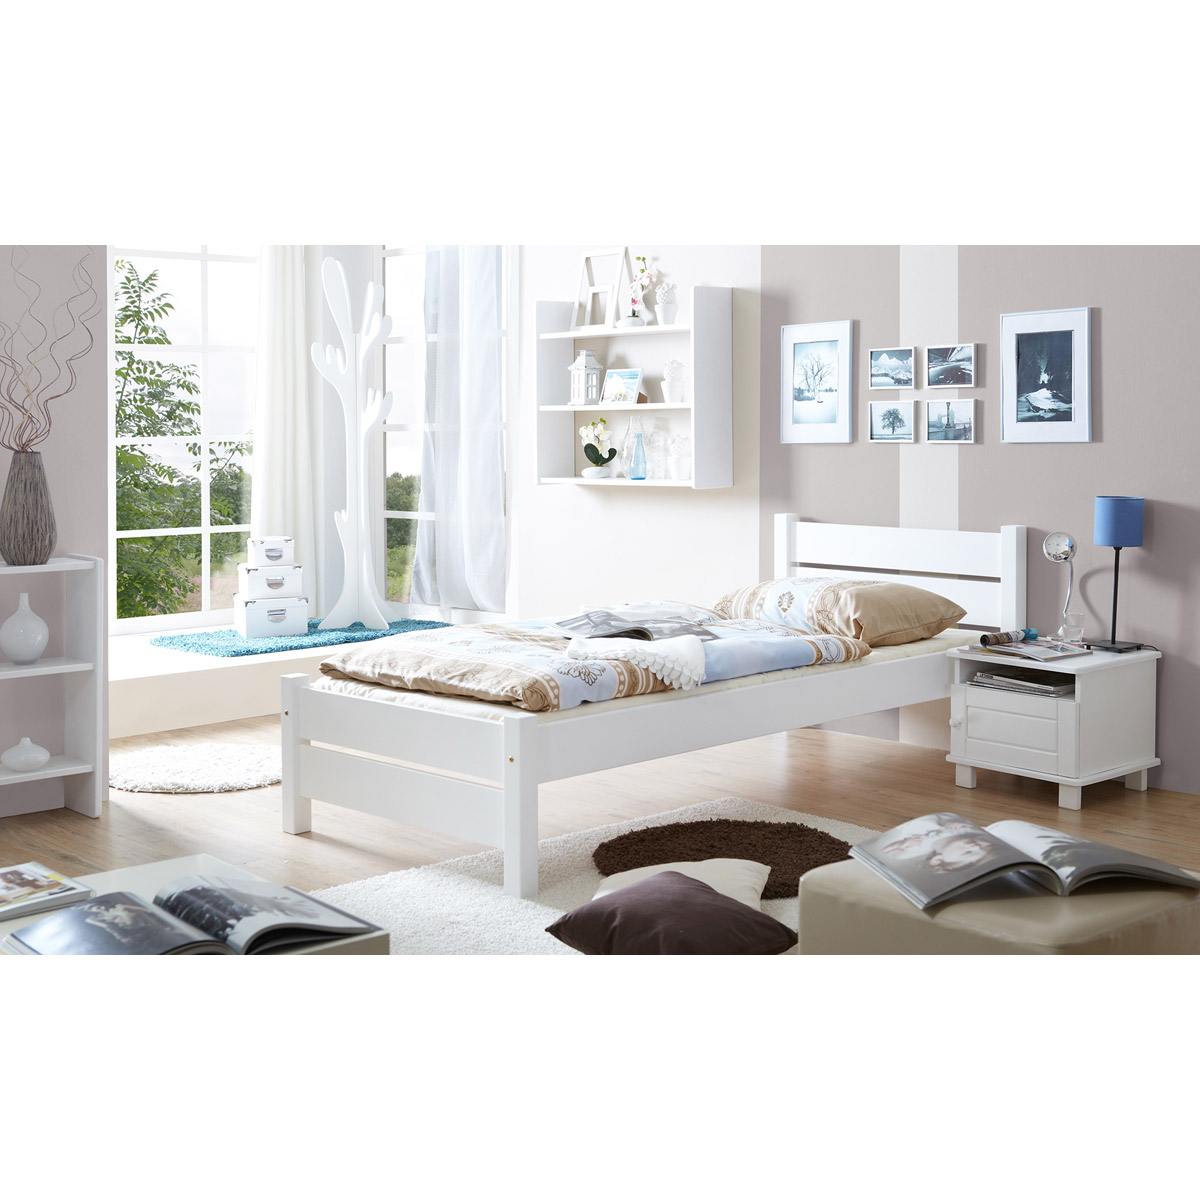 ticaa bora einzelbett kiefer wei 100x200 cm portofrei. Black Bedroom Furniture Sets. Home Design Ideas